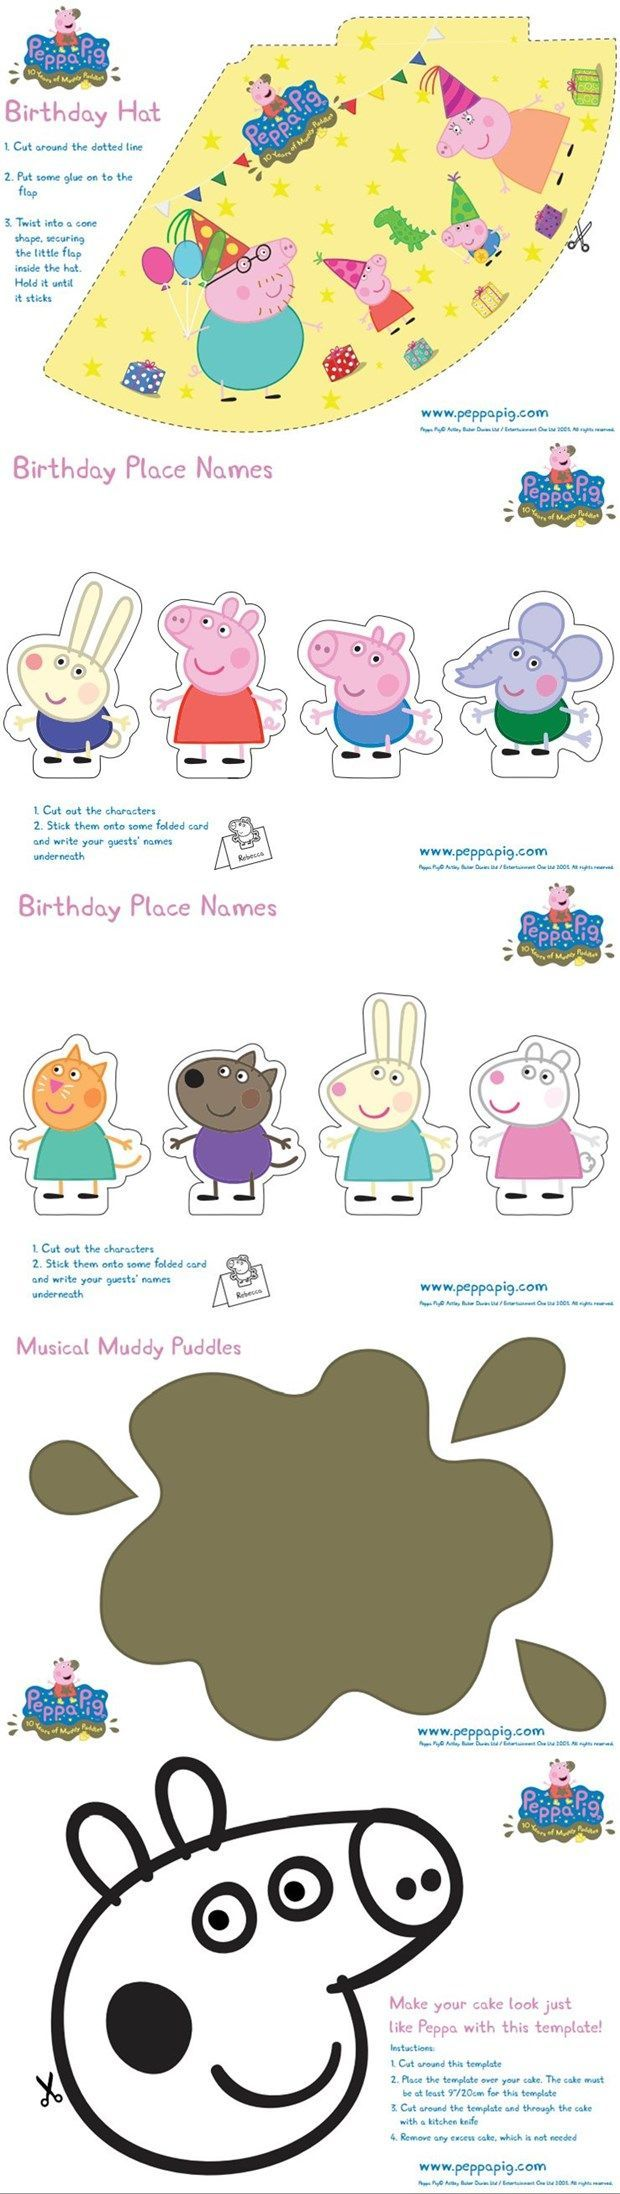 best peppa pig bday images on pinterest